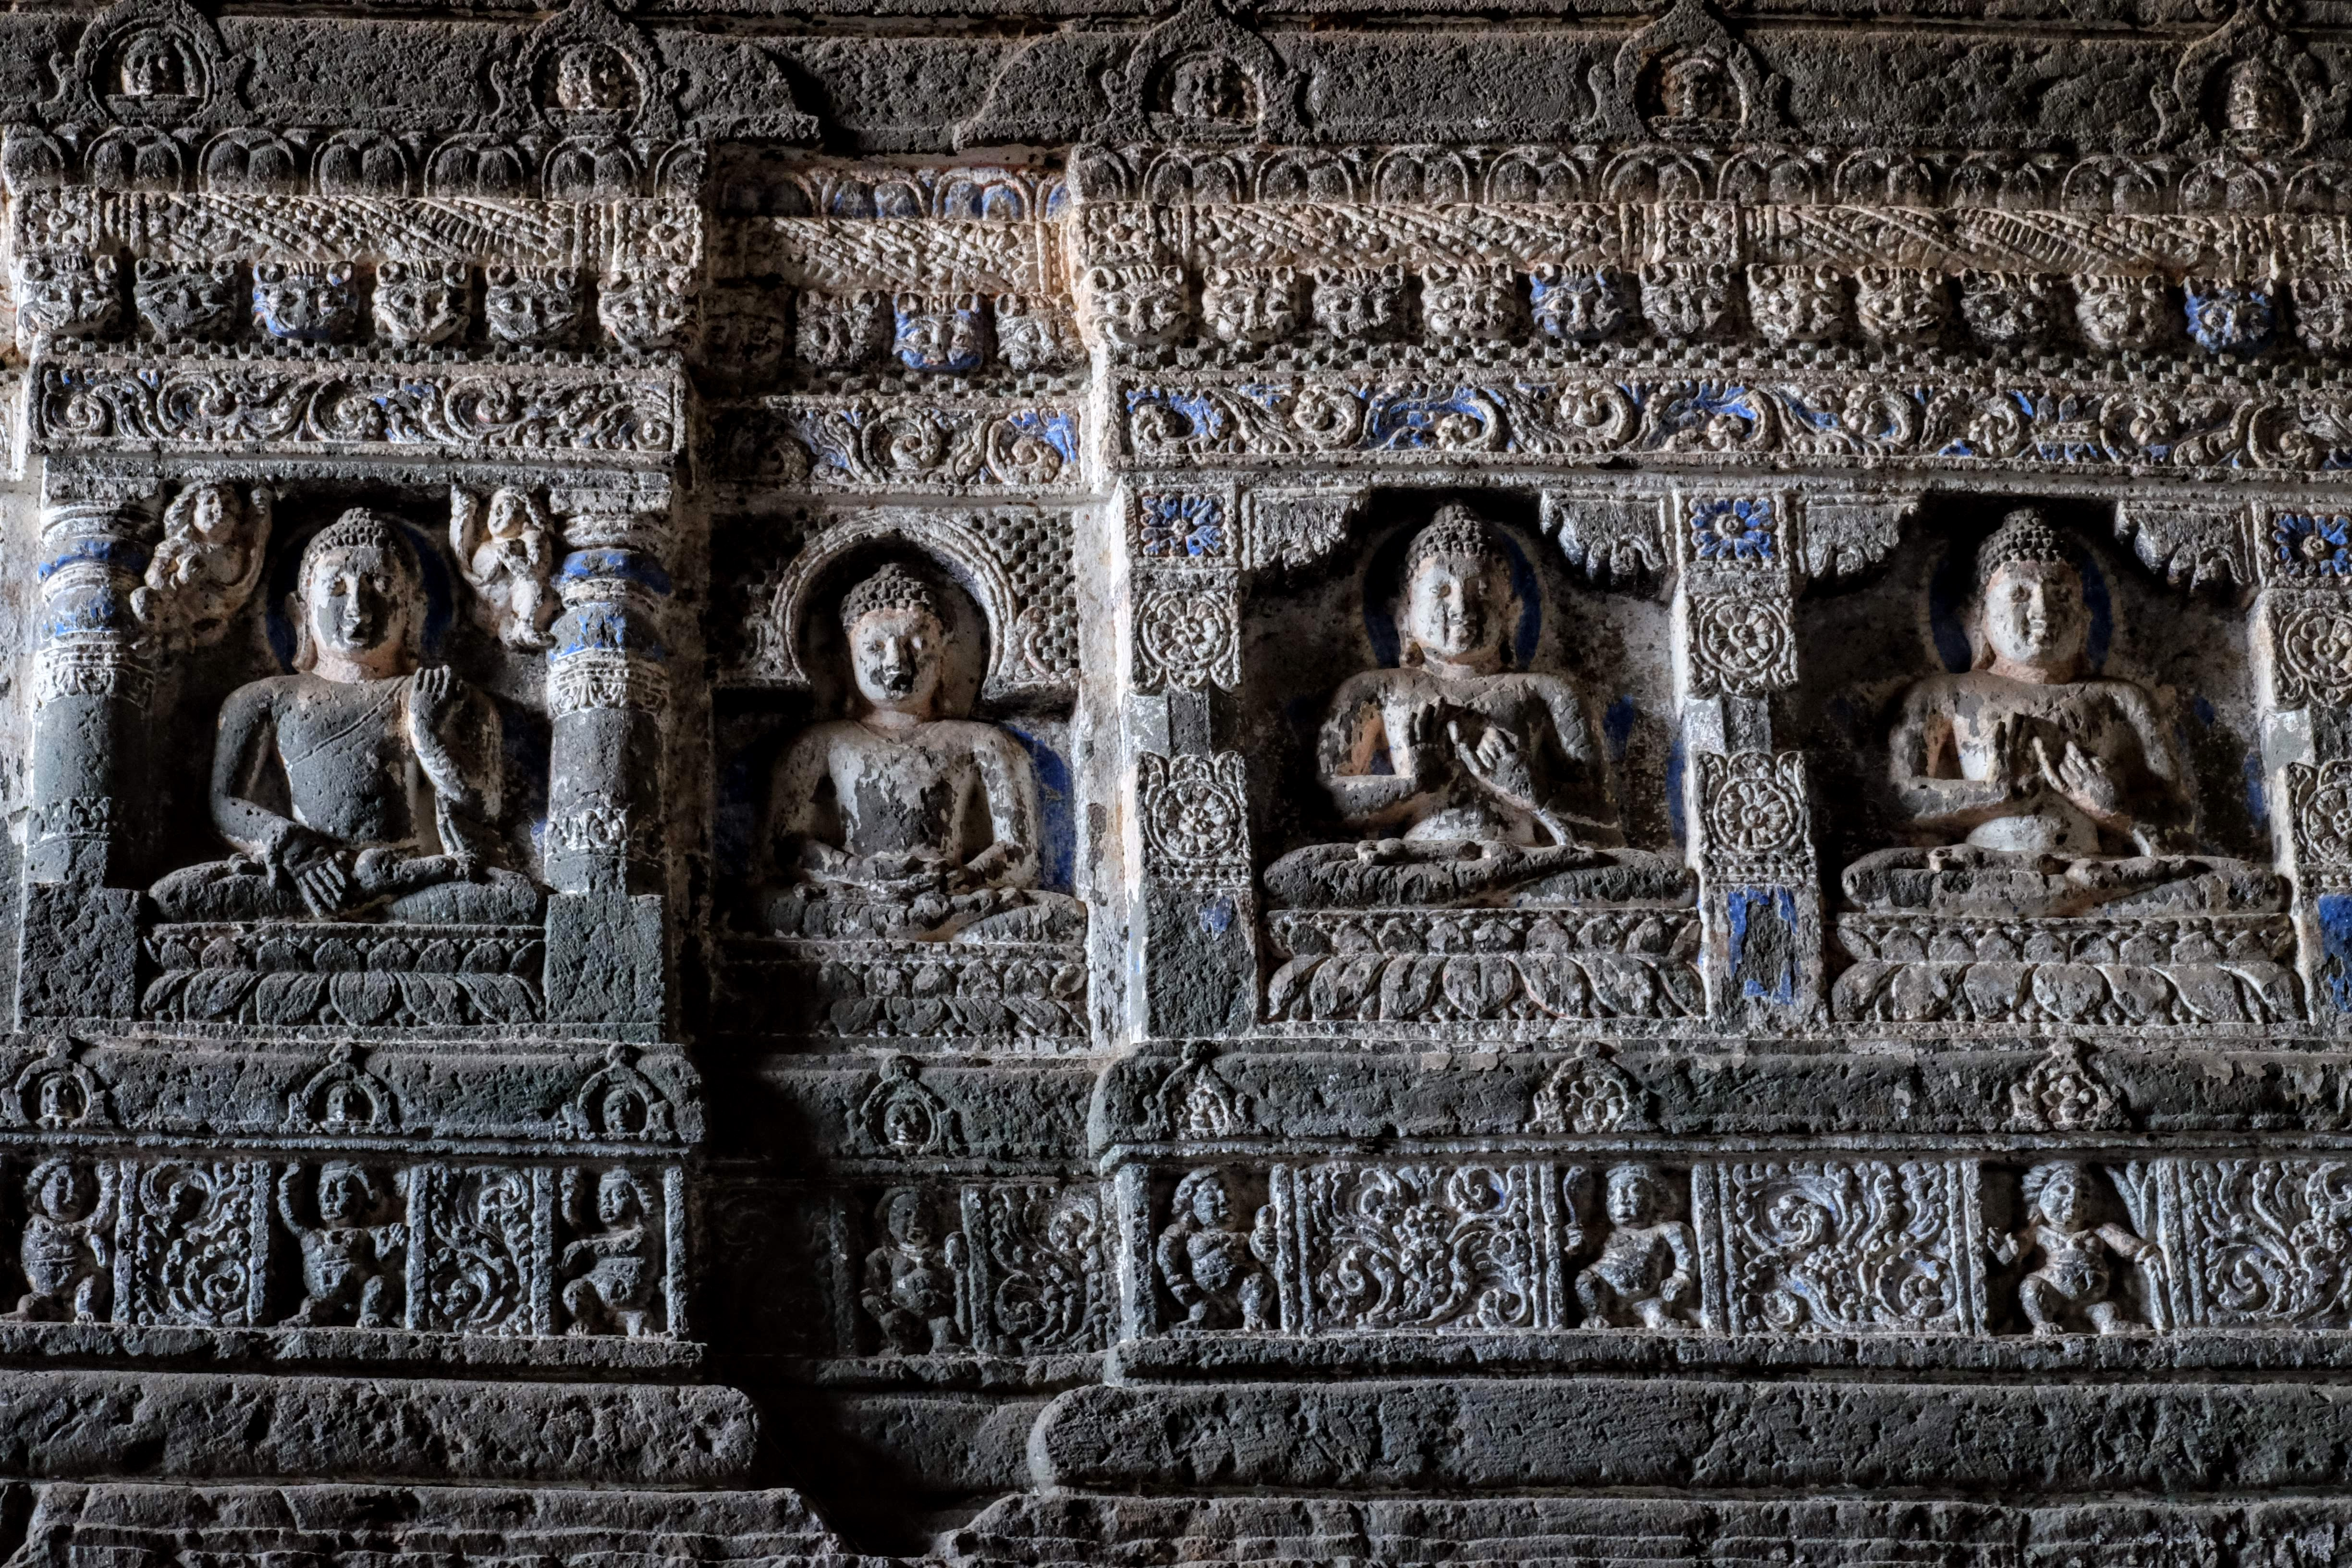 Carved Buddhas, Ajanta Caves, Maharashtra, South India